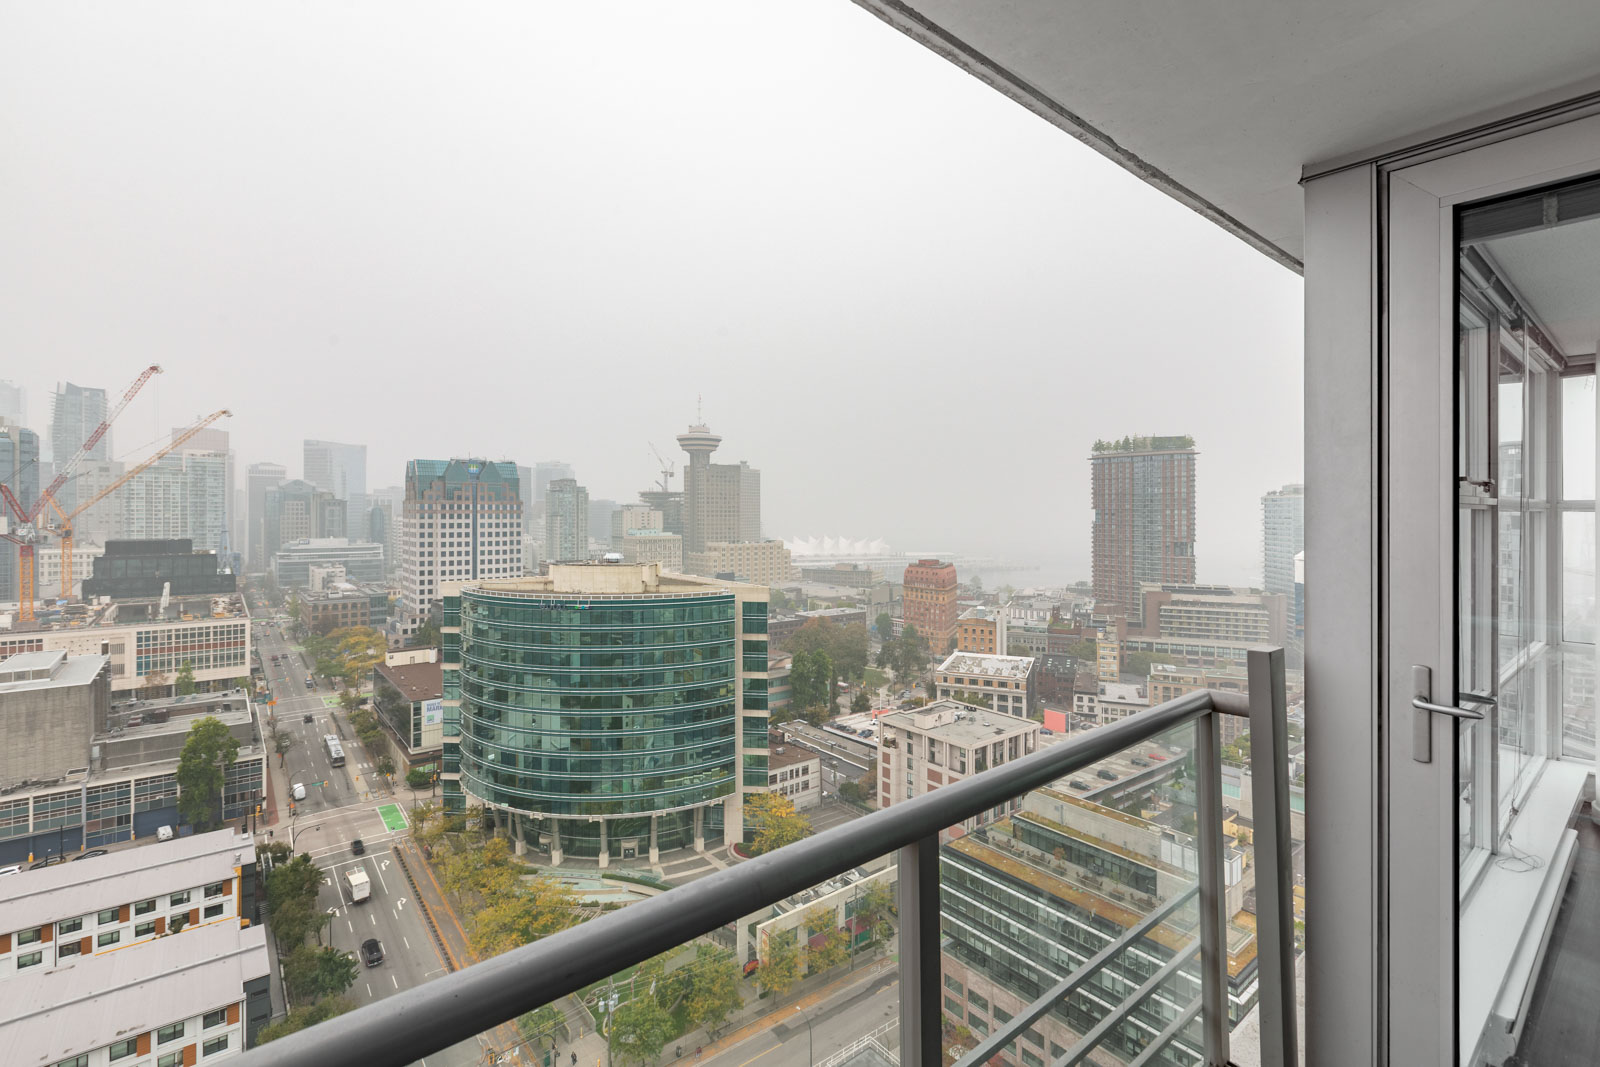 bathroom in rental condo with views of other condo buildings on a cloudy day in spectrum building in chinatown vancouver